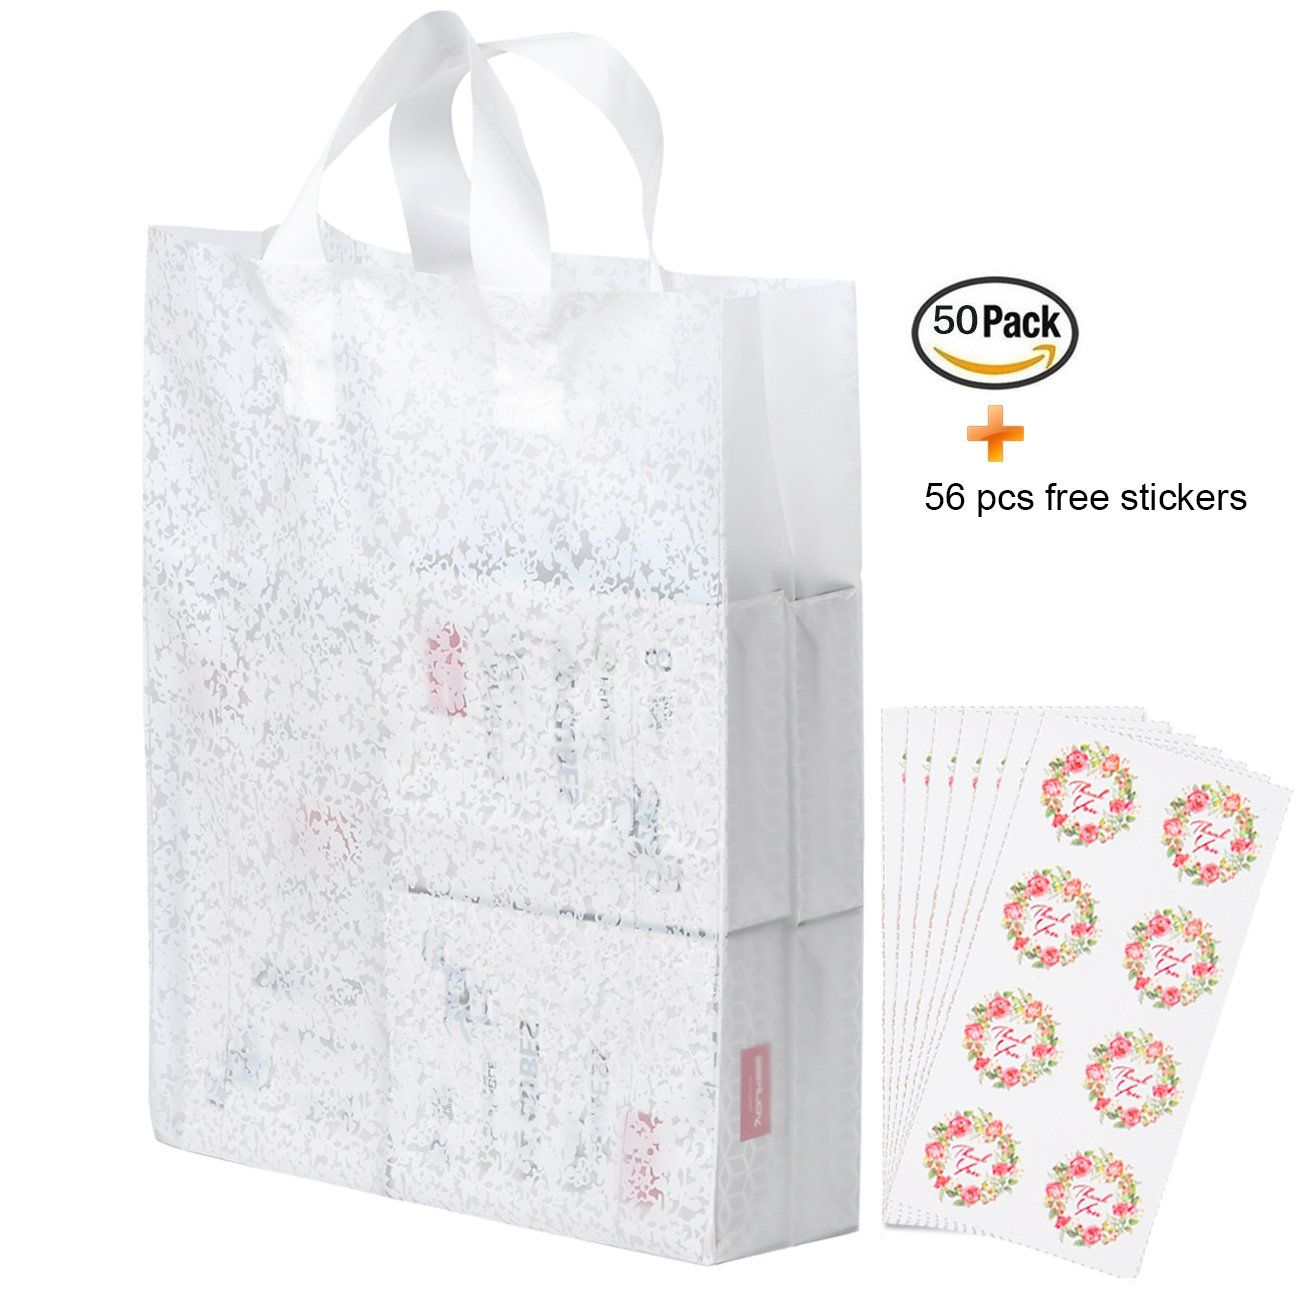 50pcs White Lace Merchandise Bags With Handles Bottom Gusset Yookeehome 4 8 Mil Extra Thick Plastic Ping Large Boutique Gift